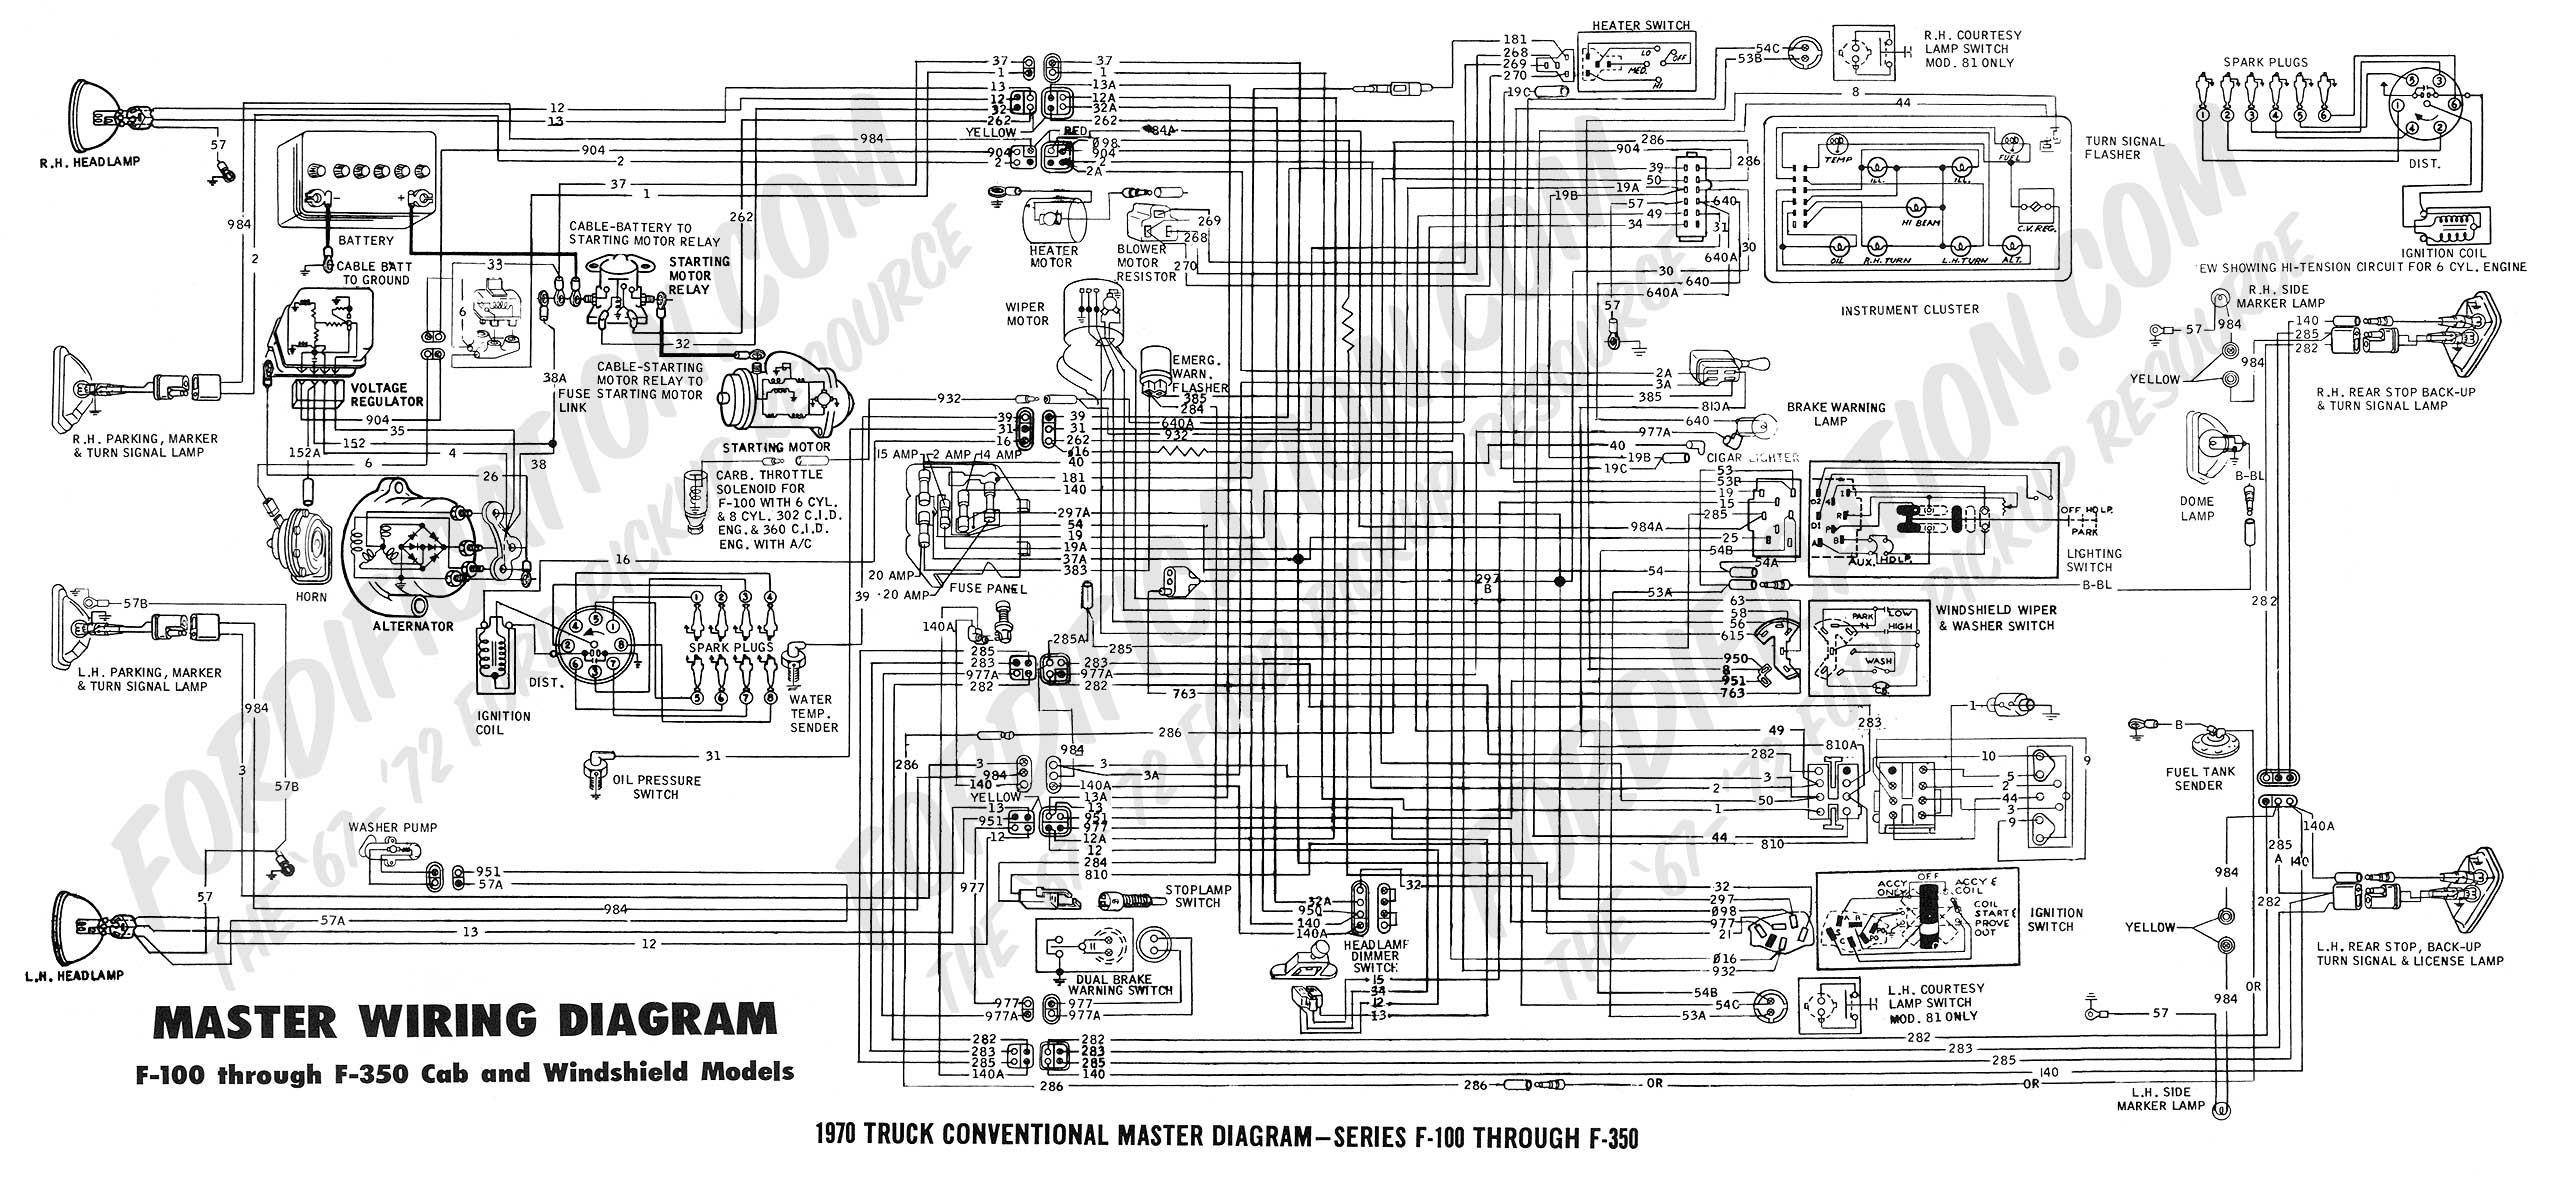 wiring diagram 70_master f450 wiring diagram f250 wiring diagram 2016 \u2022 wiring diagrams j 1985 ford f150 wiring diagram at creativeand.co